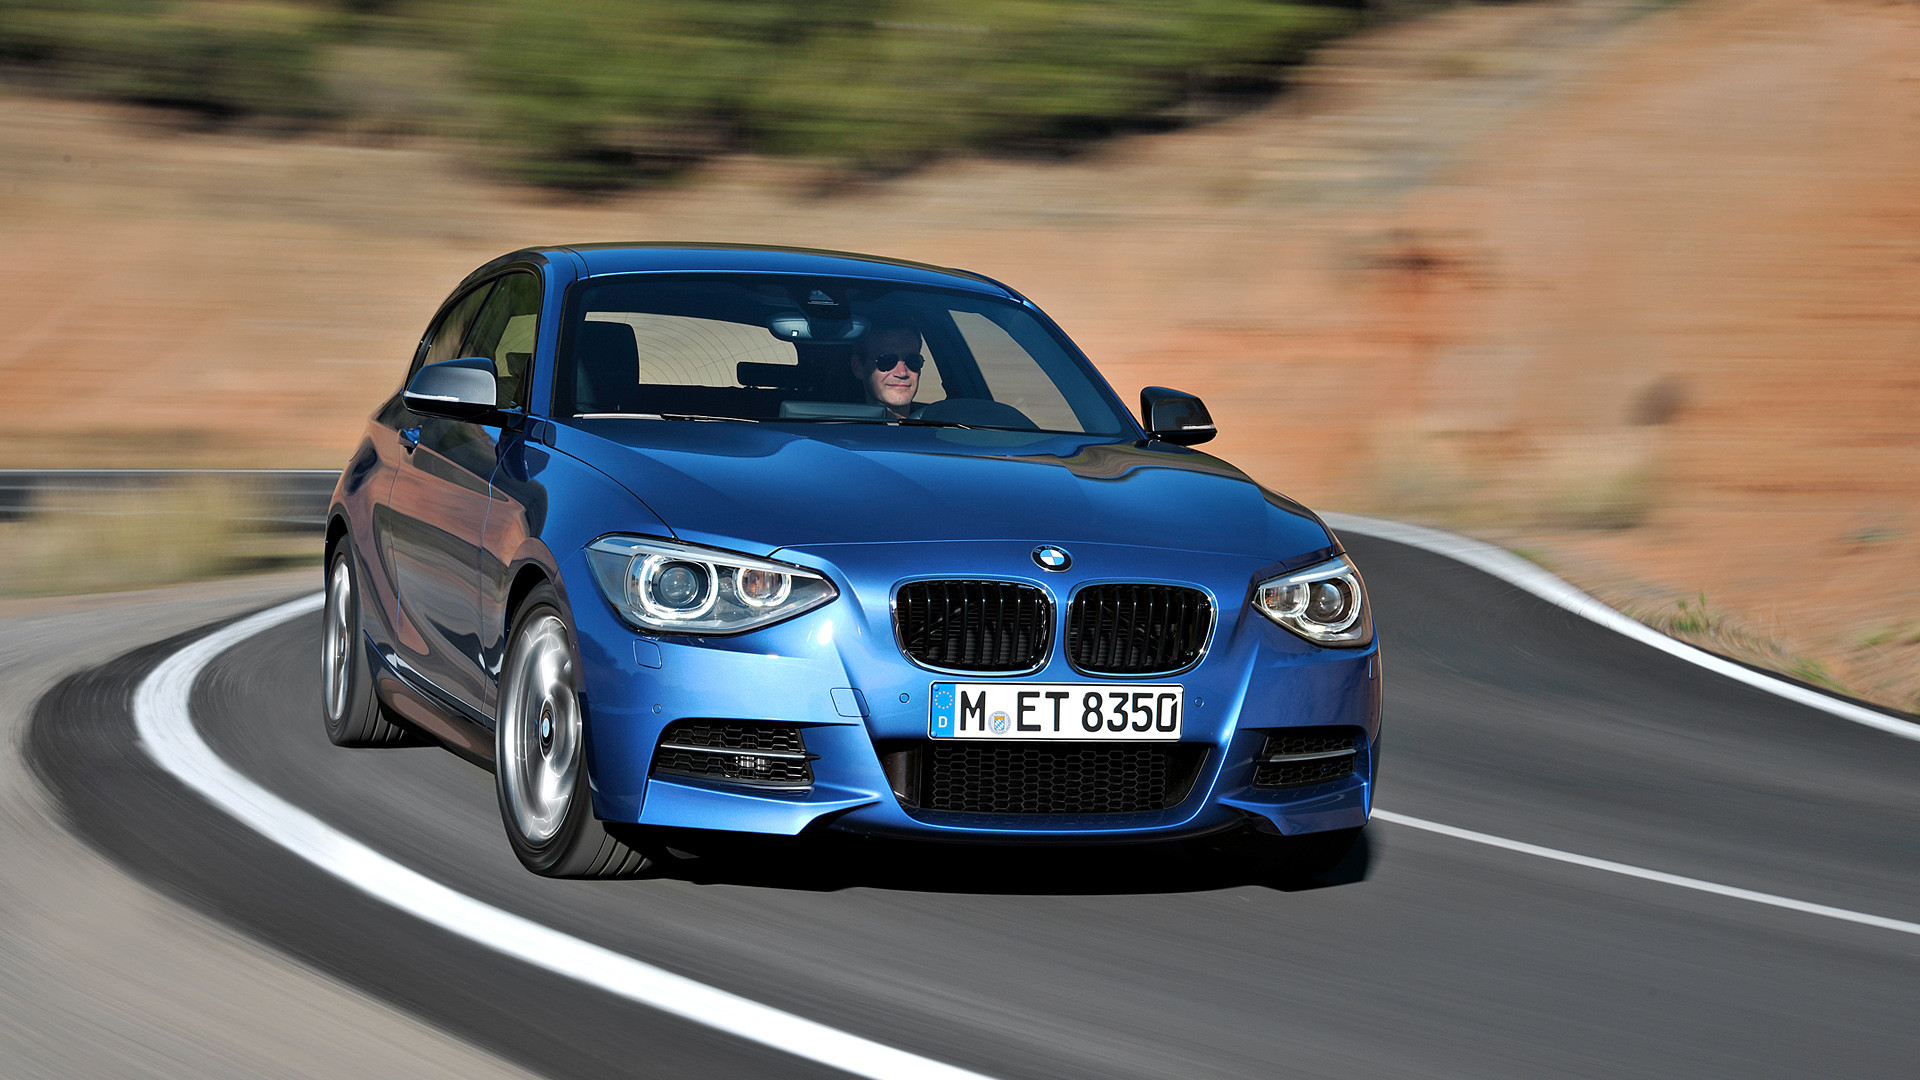 Res: 1920x1080, 2013 BMW M135i picture